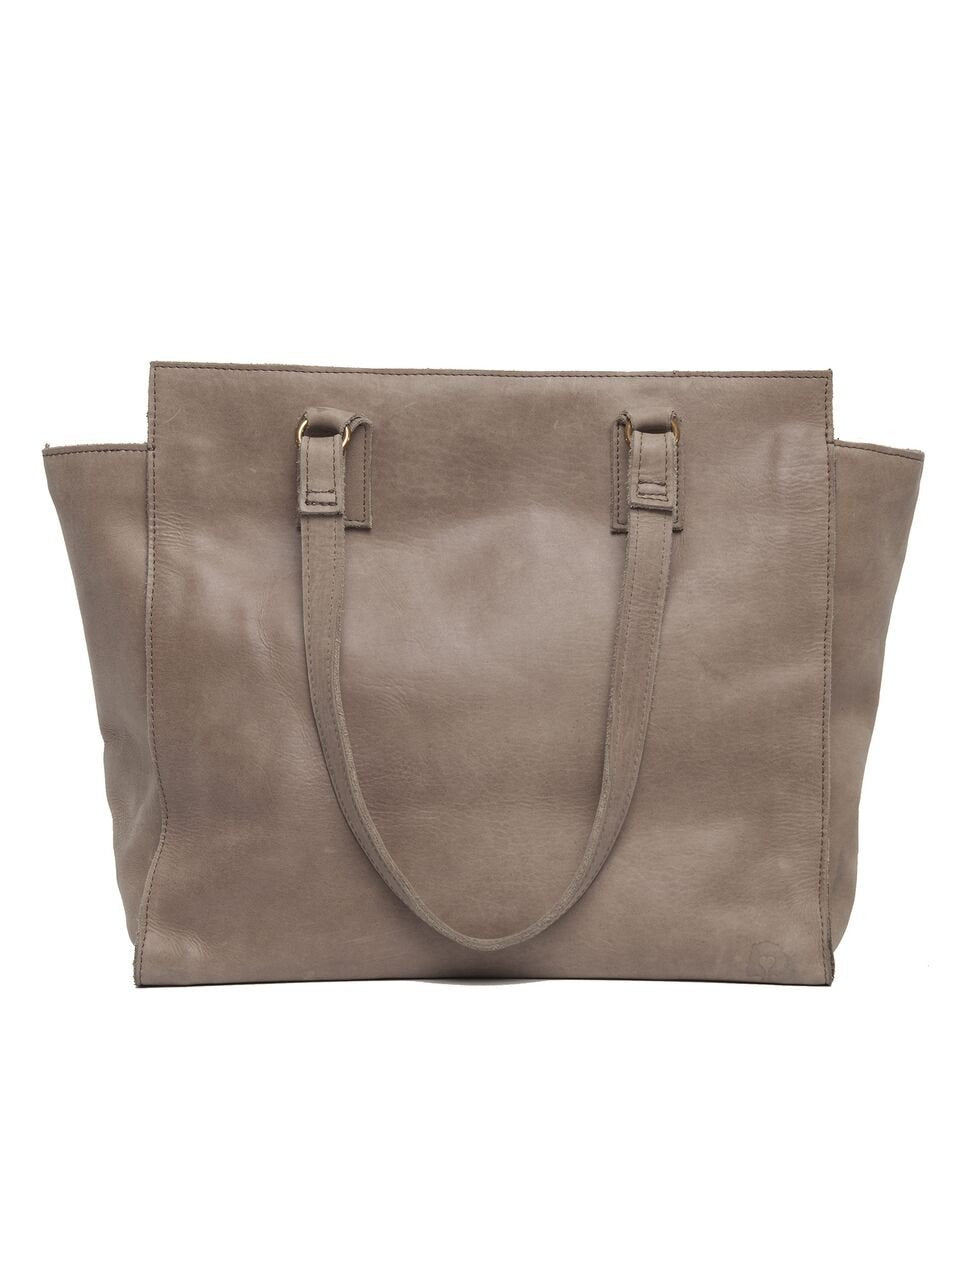 Meles carryall pewter.jpeg